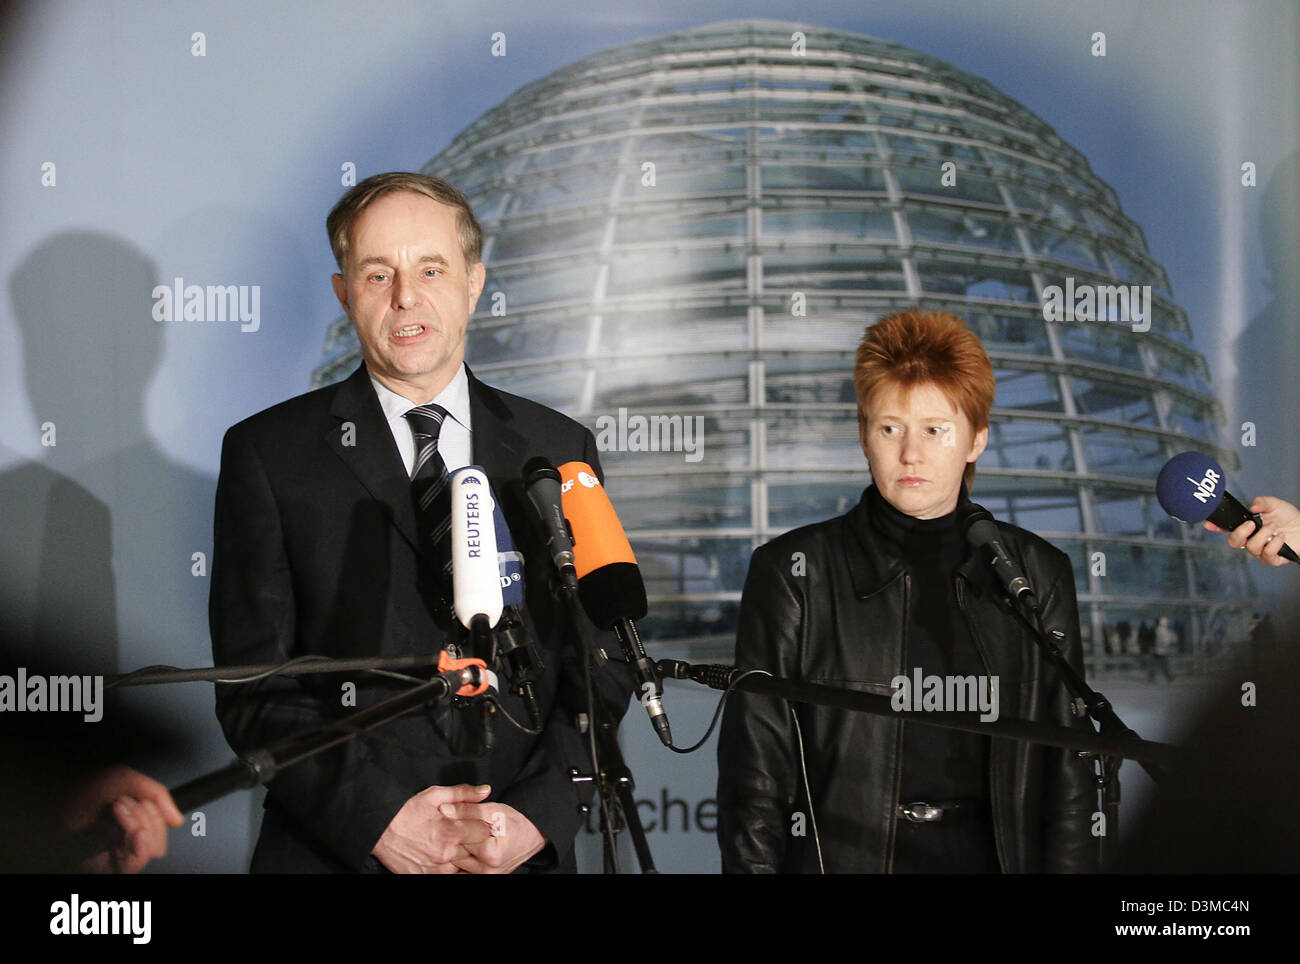 Joerg van Essen (L), parliamentary chairman of the Liberal Democrats' (FDP) Bundestags fraction and Petra Pau, the deputy chairwoman of the Bundestag fraction of the Links Party, comment on the failure of their partys' proposal to institute a board of inquiry concerning the activities of the German intelligence service in Iraq in Berlin, Wednesday, 25 January 2006. After the term o Stock Photo